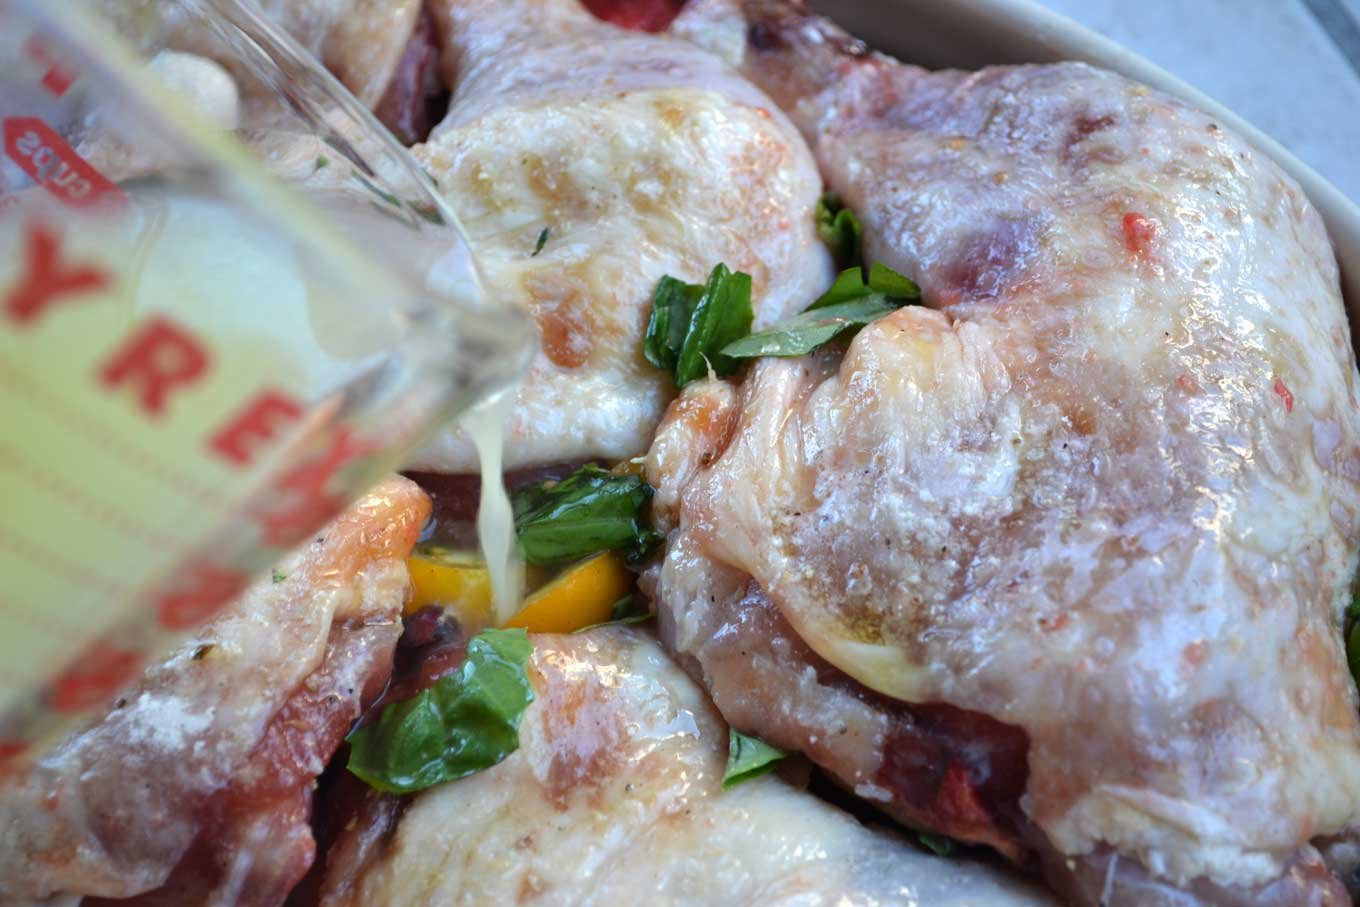 garlic-infused baked chicken legs | rusticplate.com